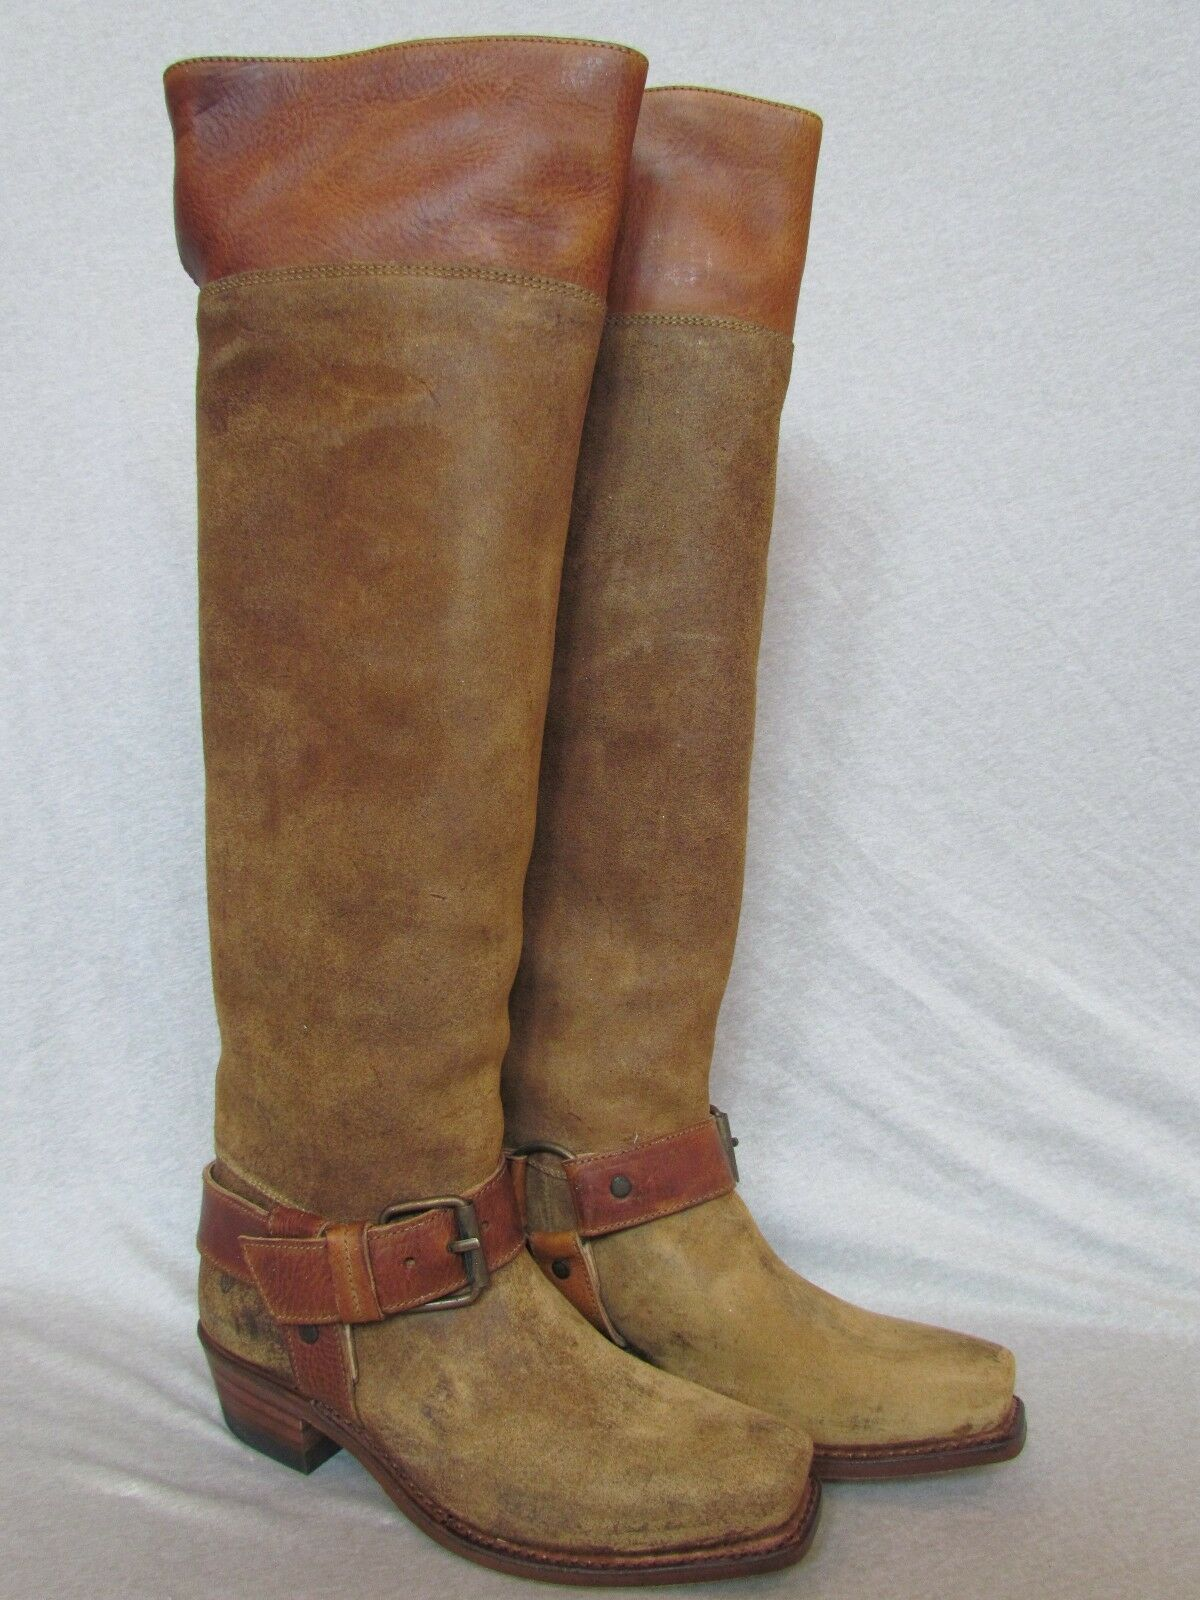 NEW NWB FRYE DEENA HARNESS TALL AT/OVER KNEE LEATHER BOOT SZ 7